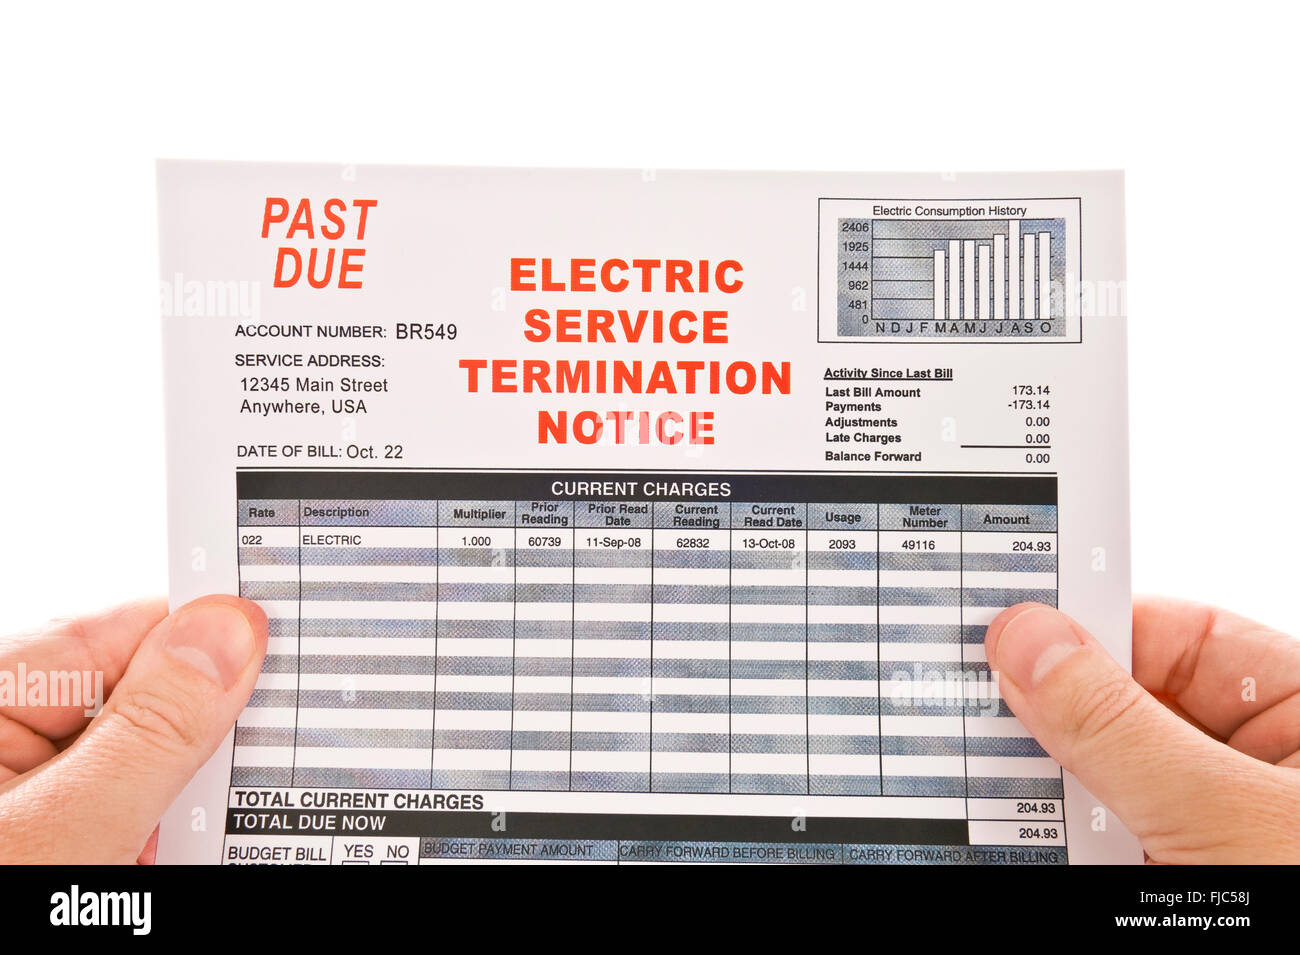 Electricity Service Past Due Bill - Stock Image